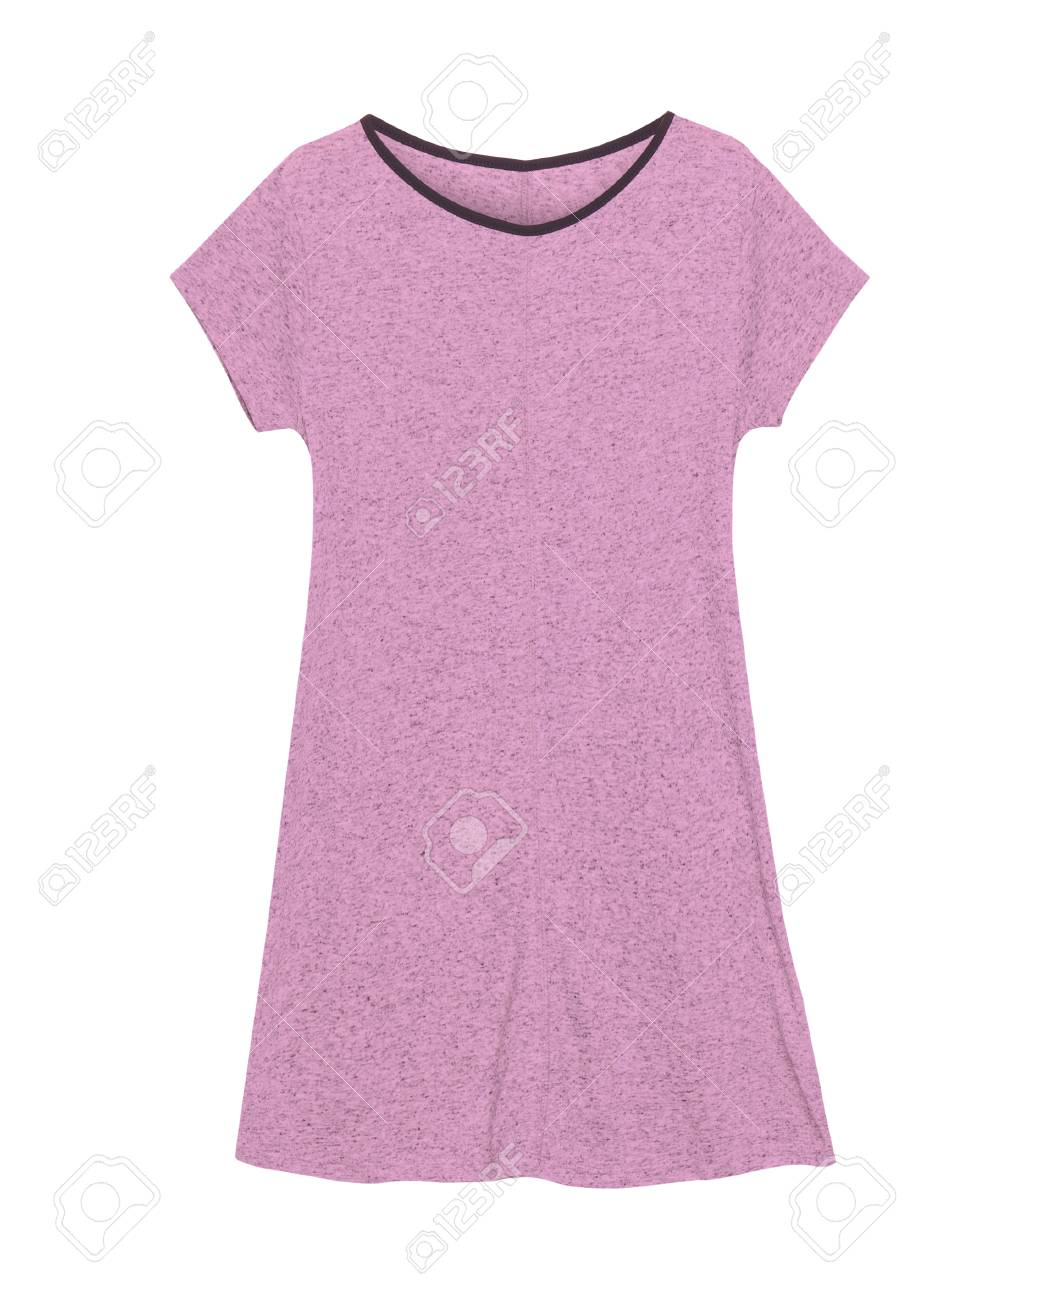 6c91ae14 Pale pink simple sport tracksuit dress isolated white Stock Photo - 93649174